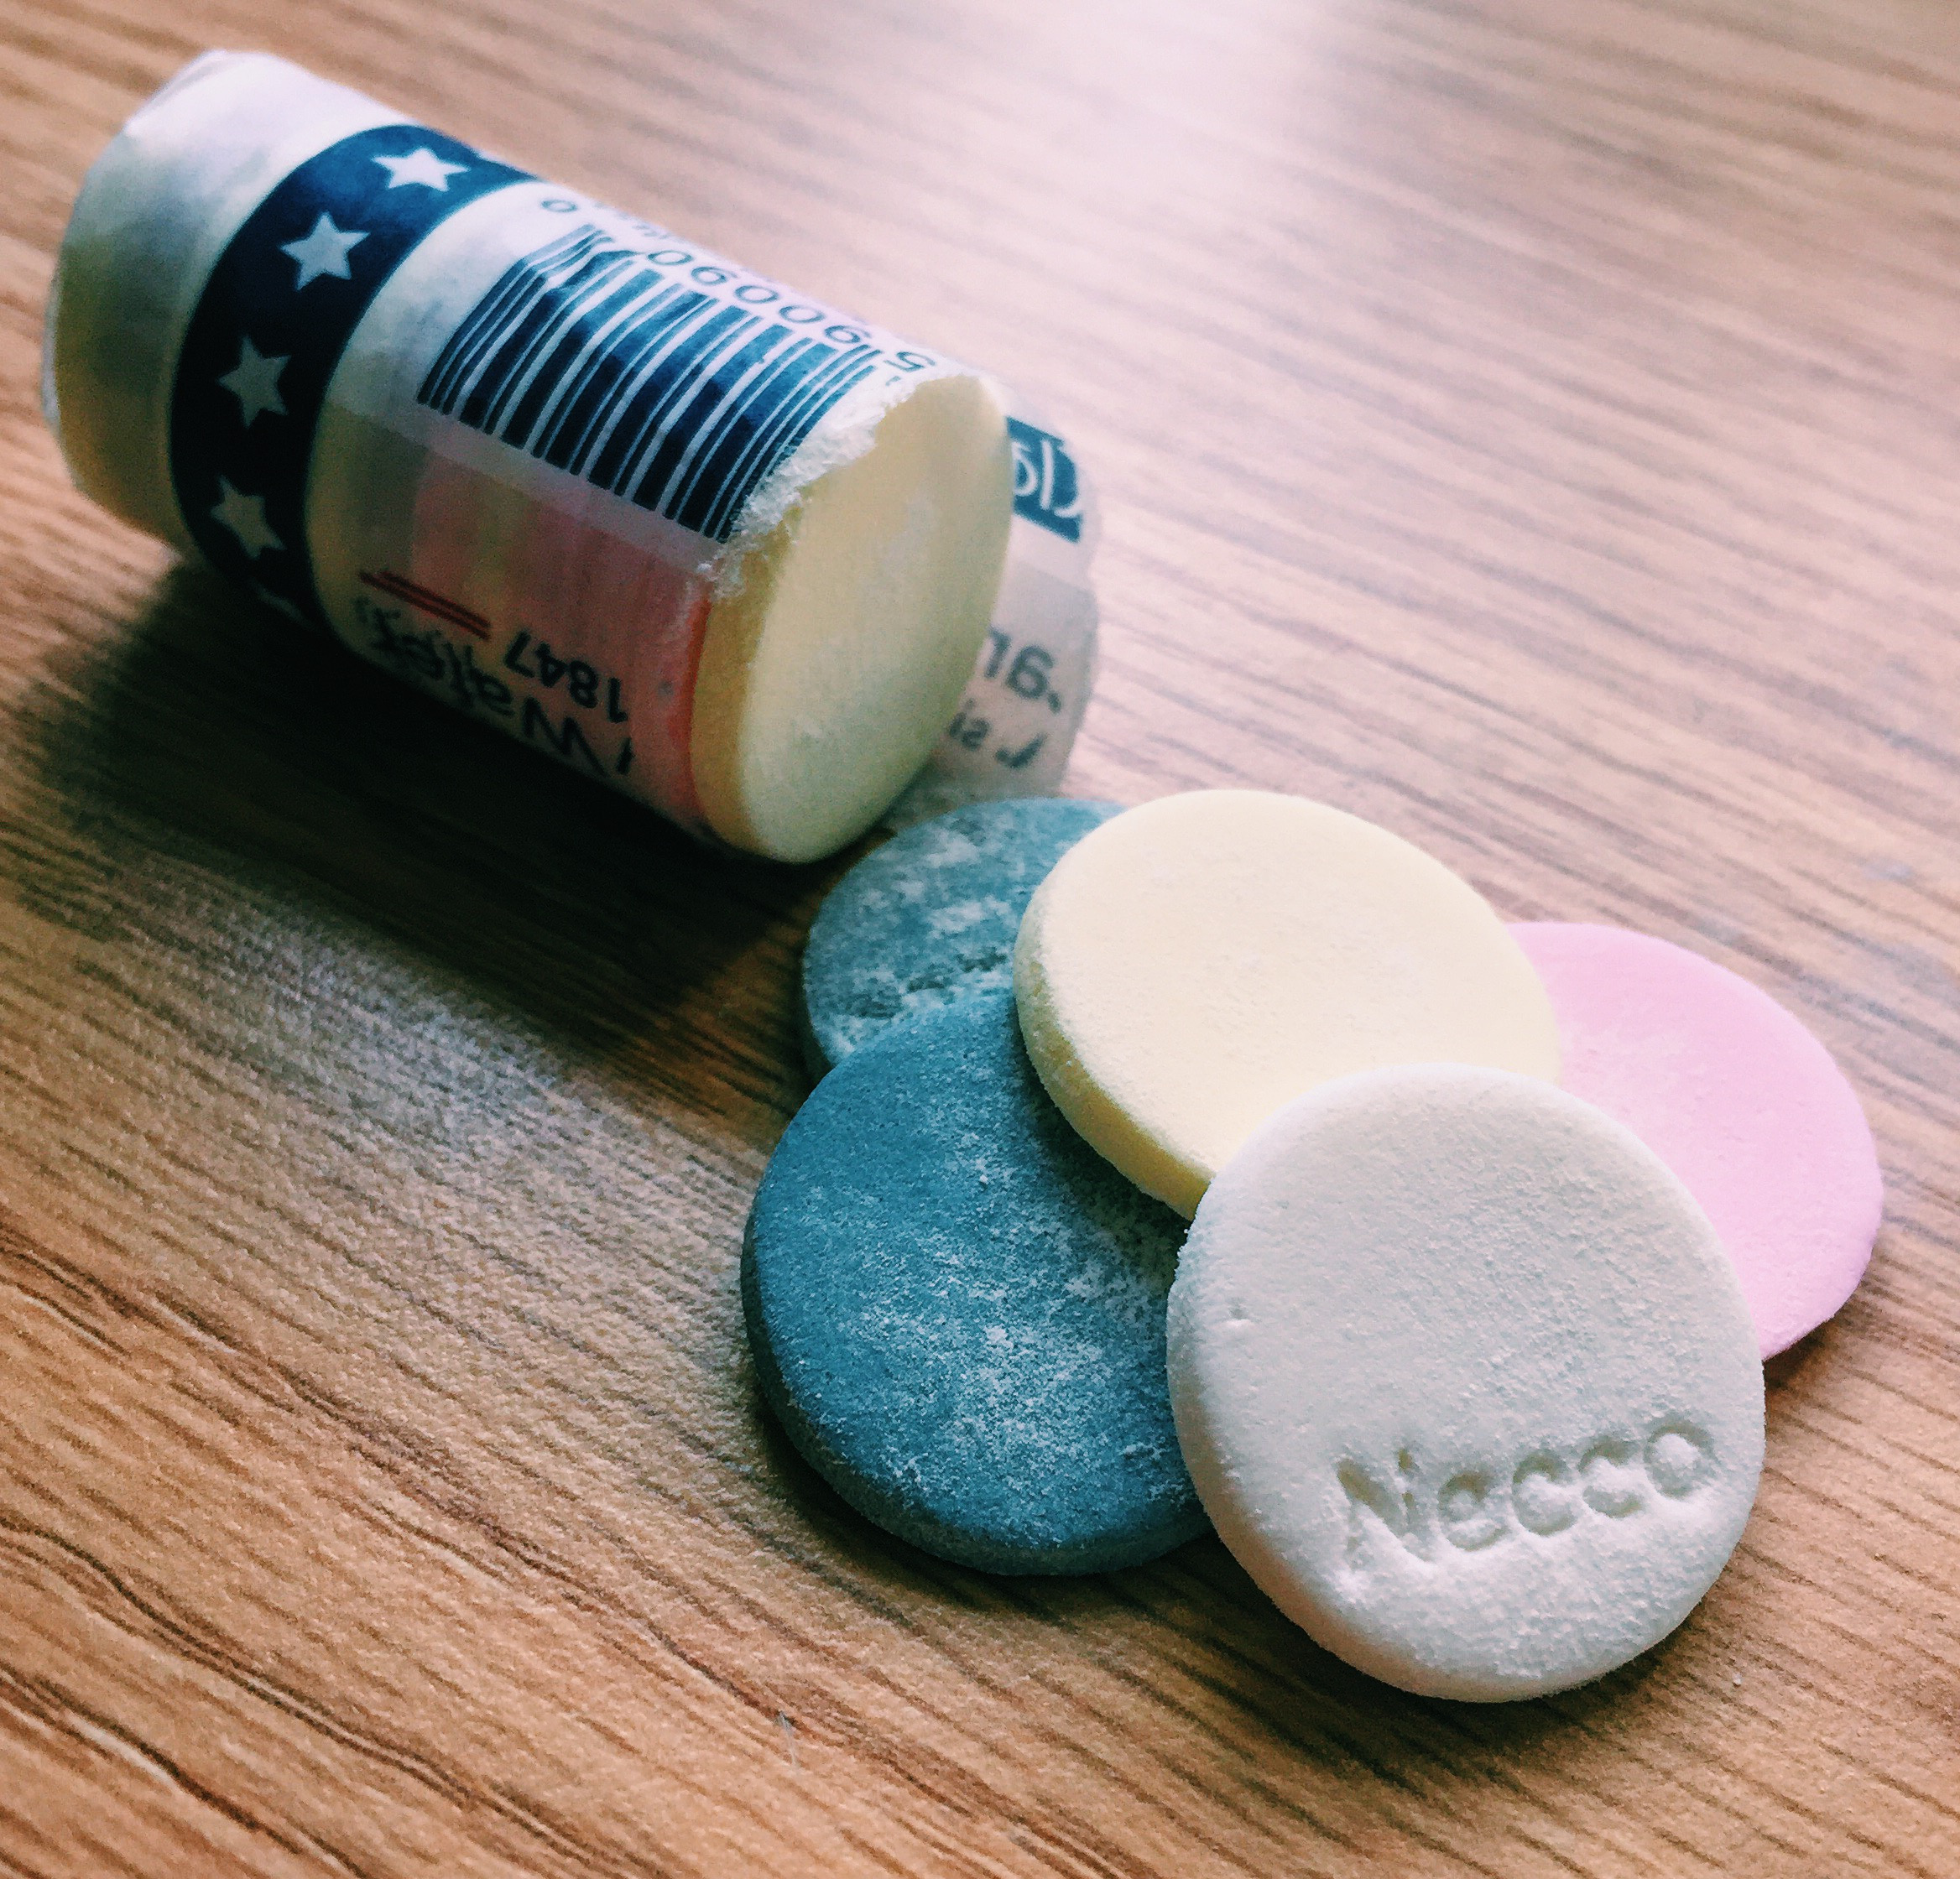 Image result for Necco Wafers